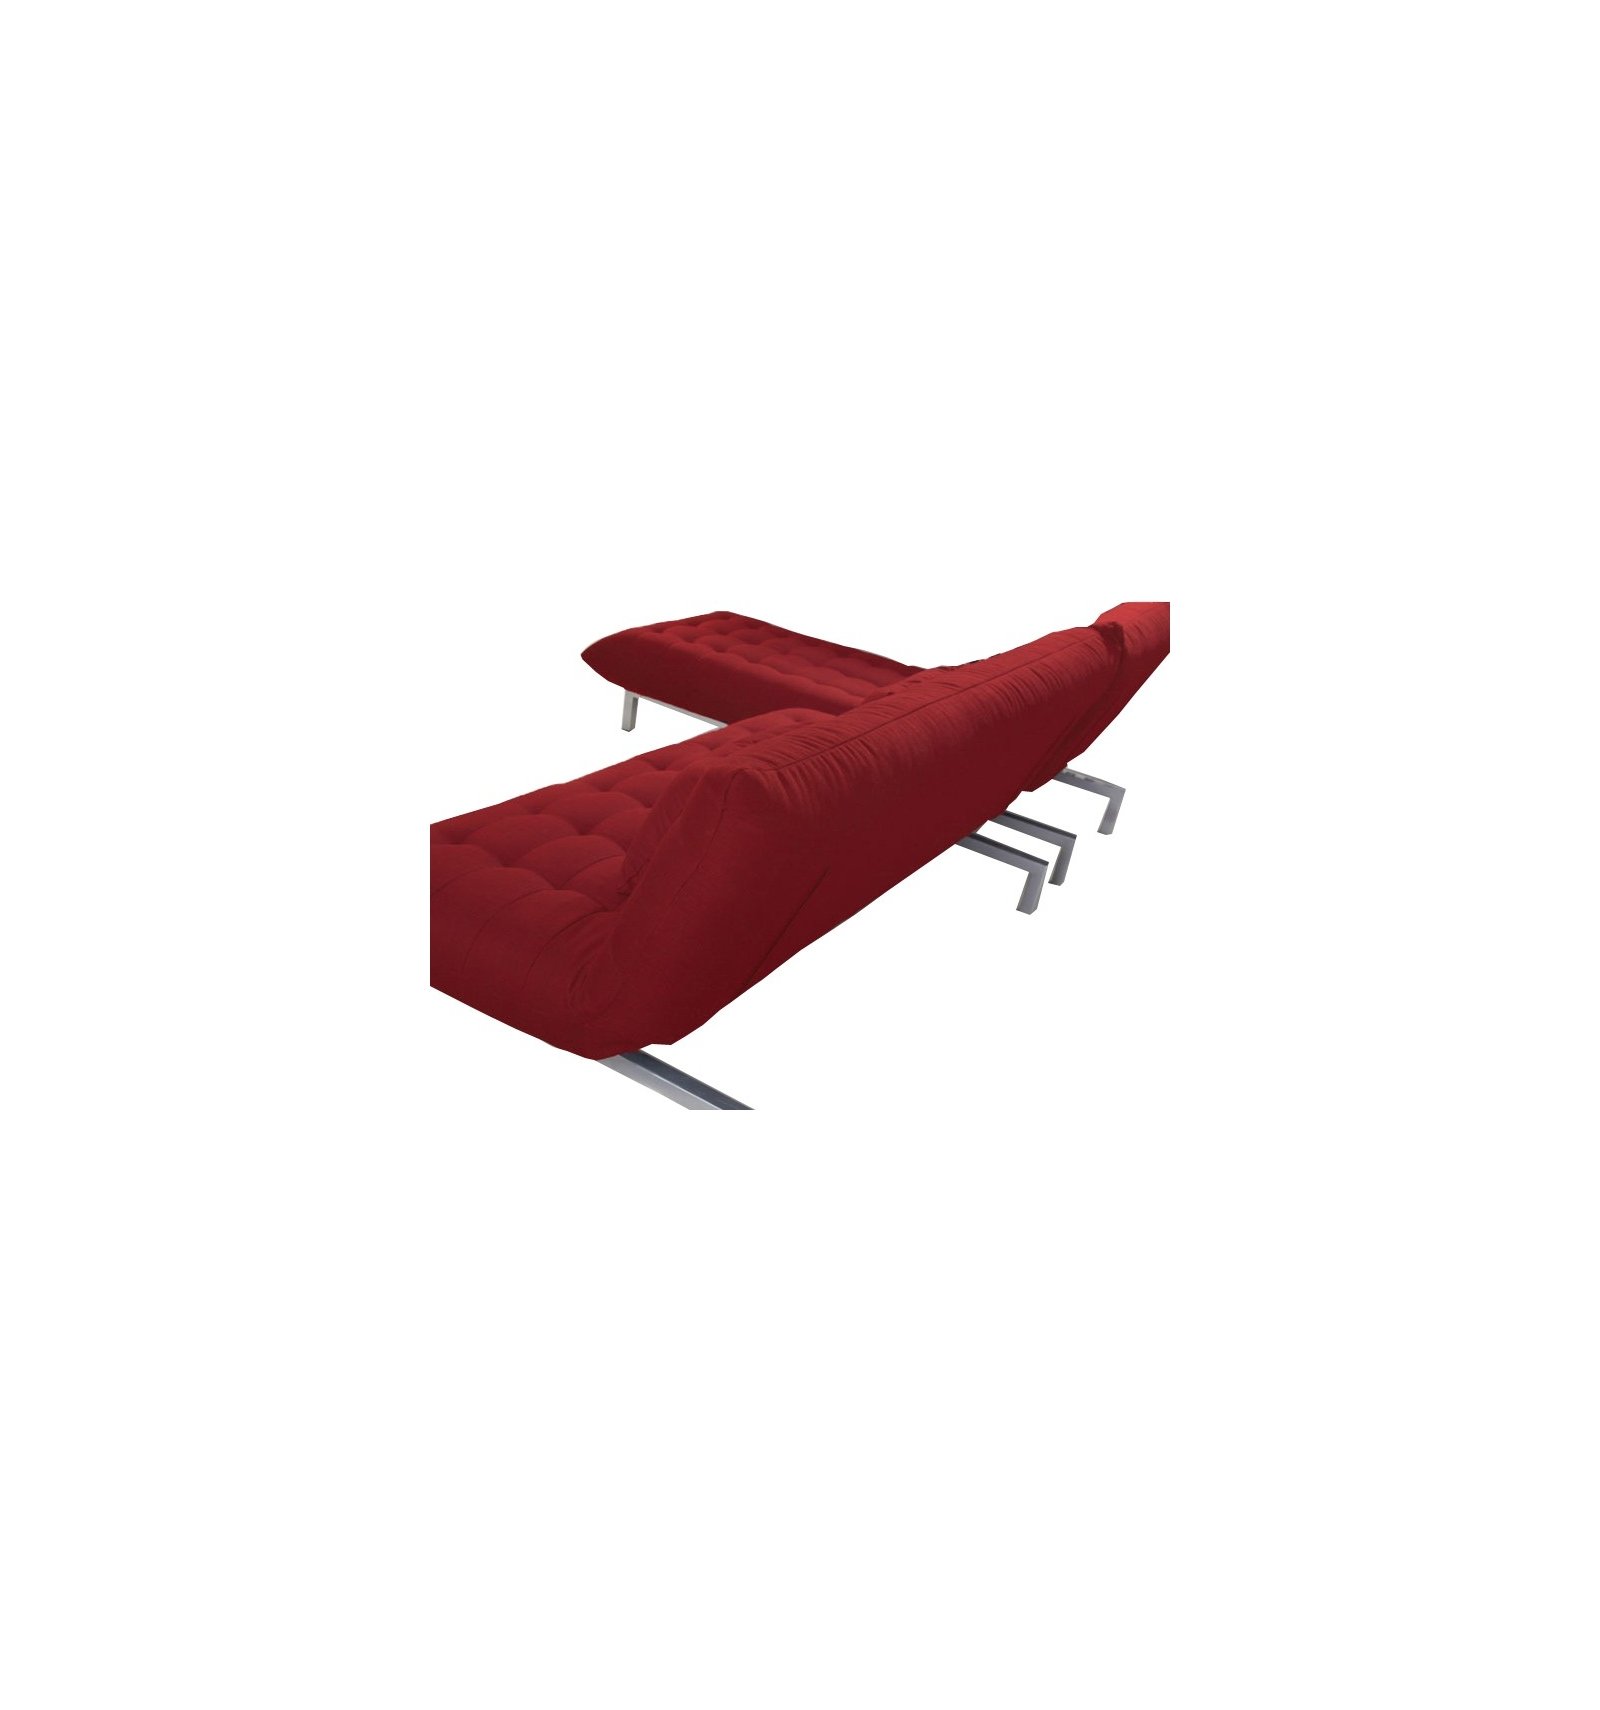 Sofa cama chaise longue peninsula for Sofa chaise longue cama barato